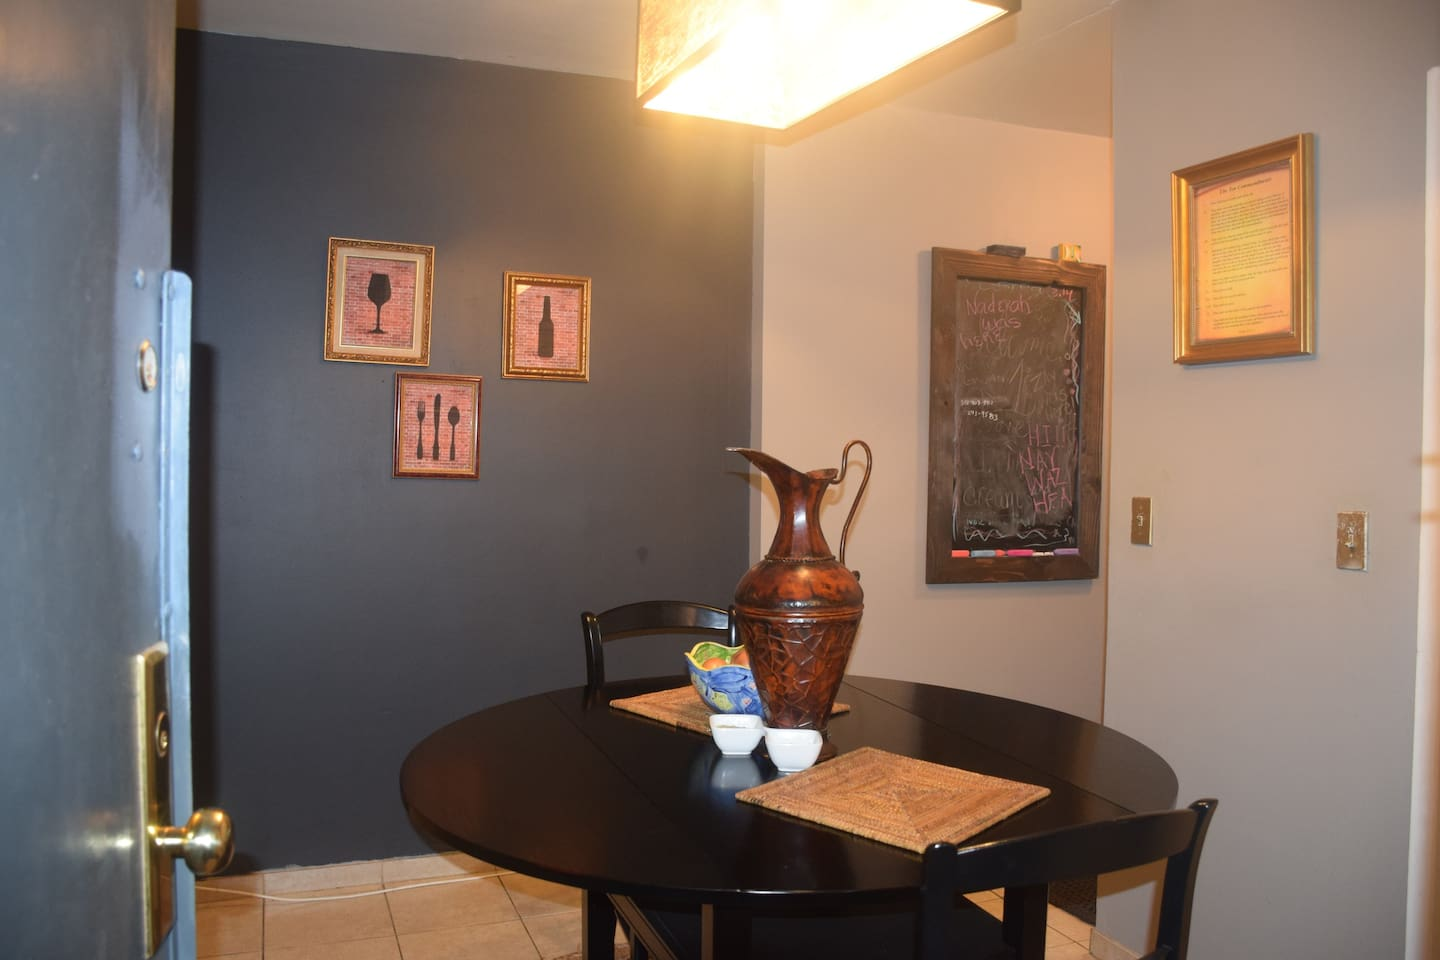 entrance into the apartment, dining table opened to seat 4